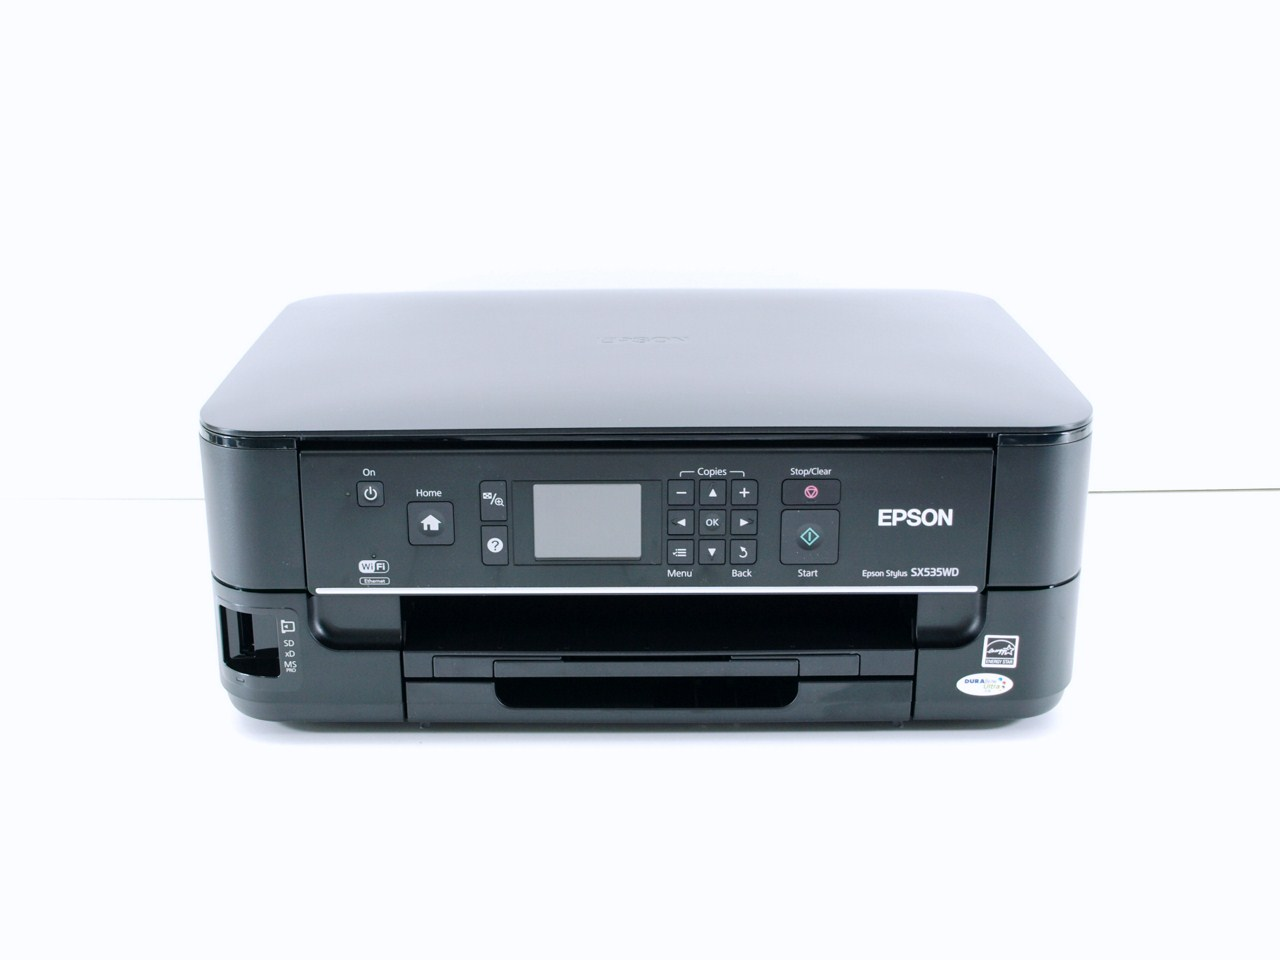 Best Compact Printers 2019 - Small, Portable Wi-Fi Printer ...